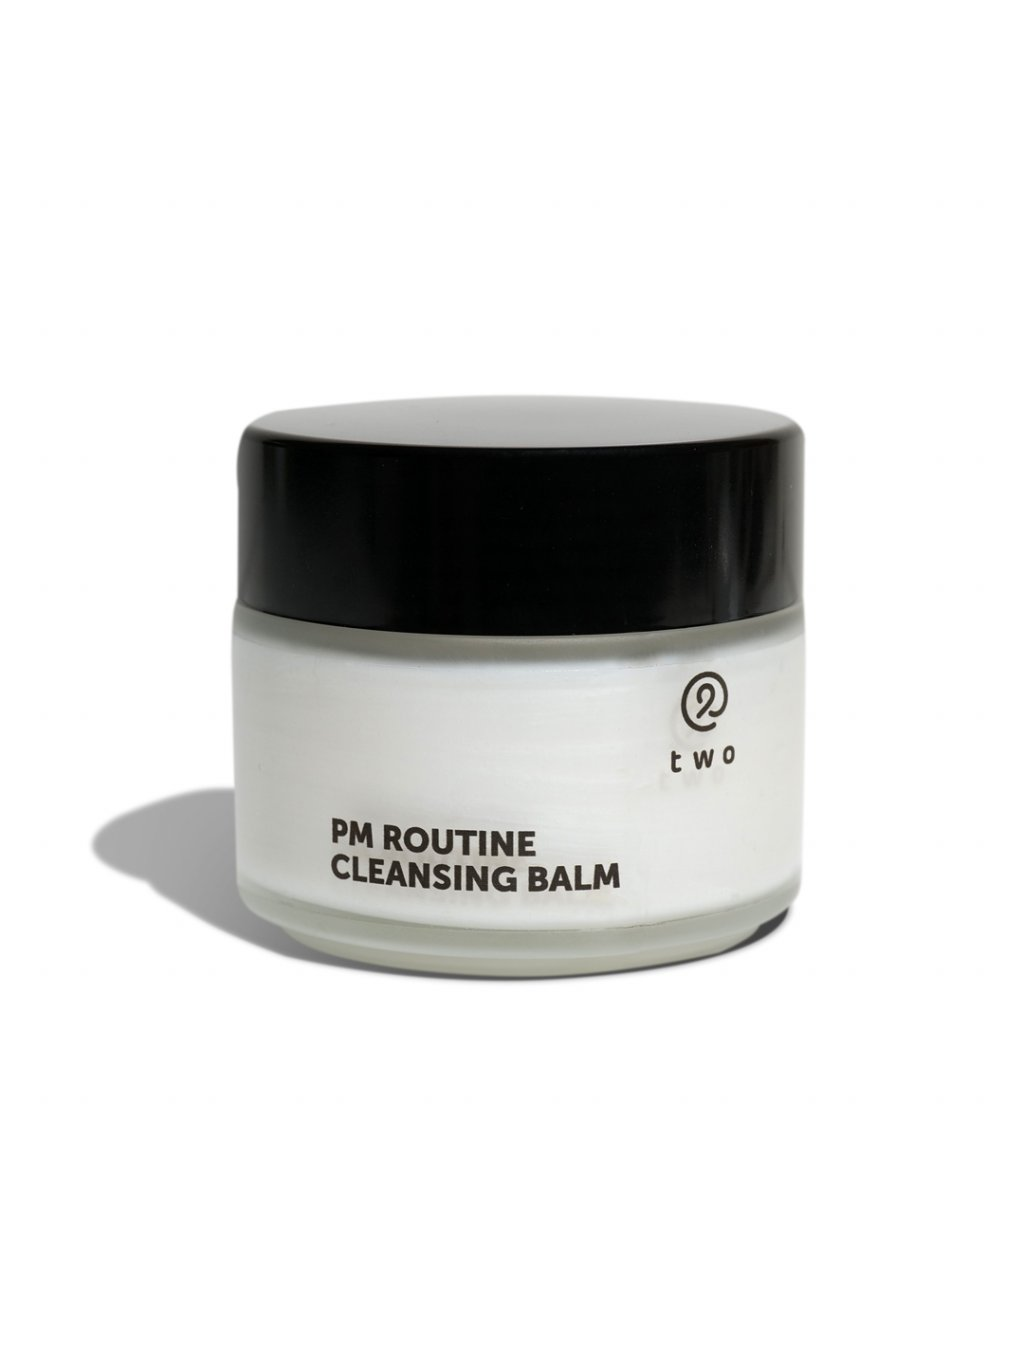 PM ROUTINE CLEANSING BALM